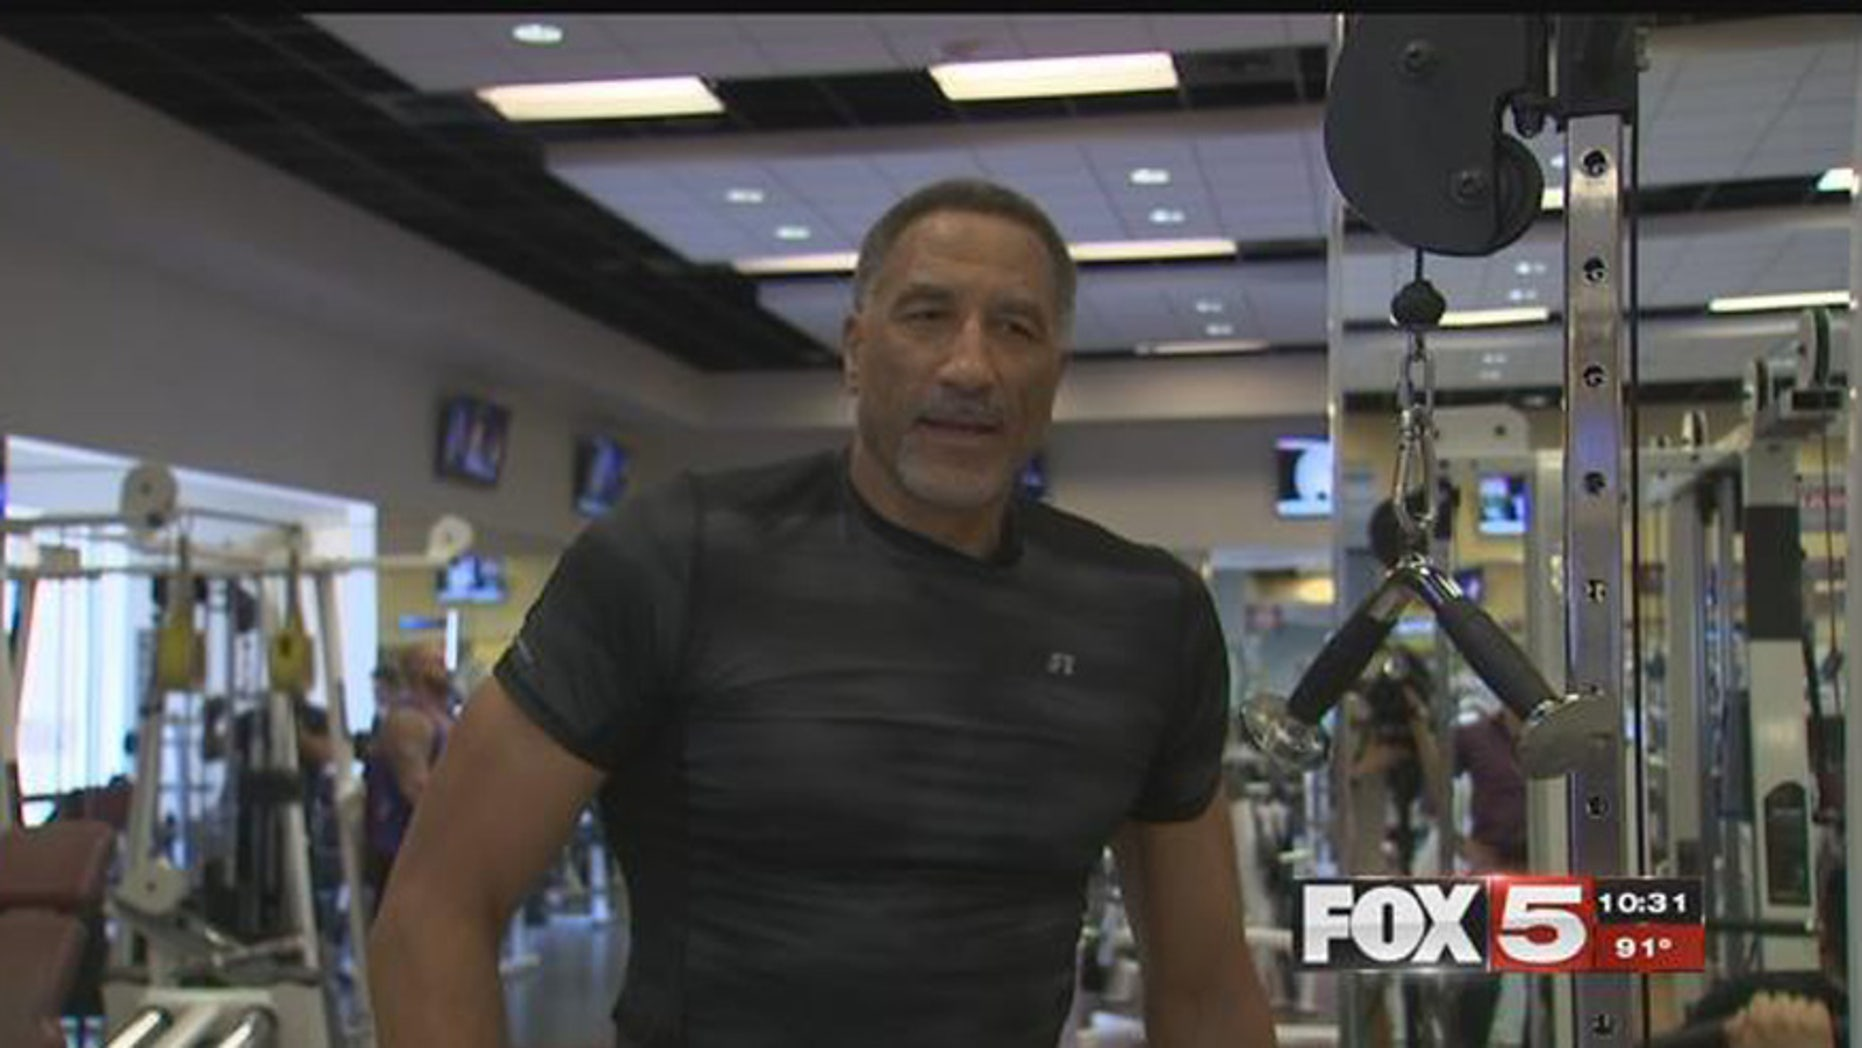 Calvin Roberts, 61, of Las Vegas is training to get a spot in the NBA.